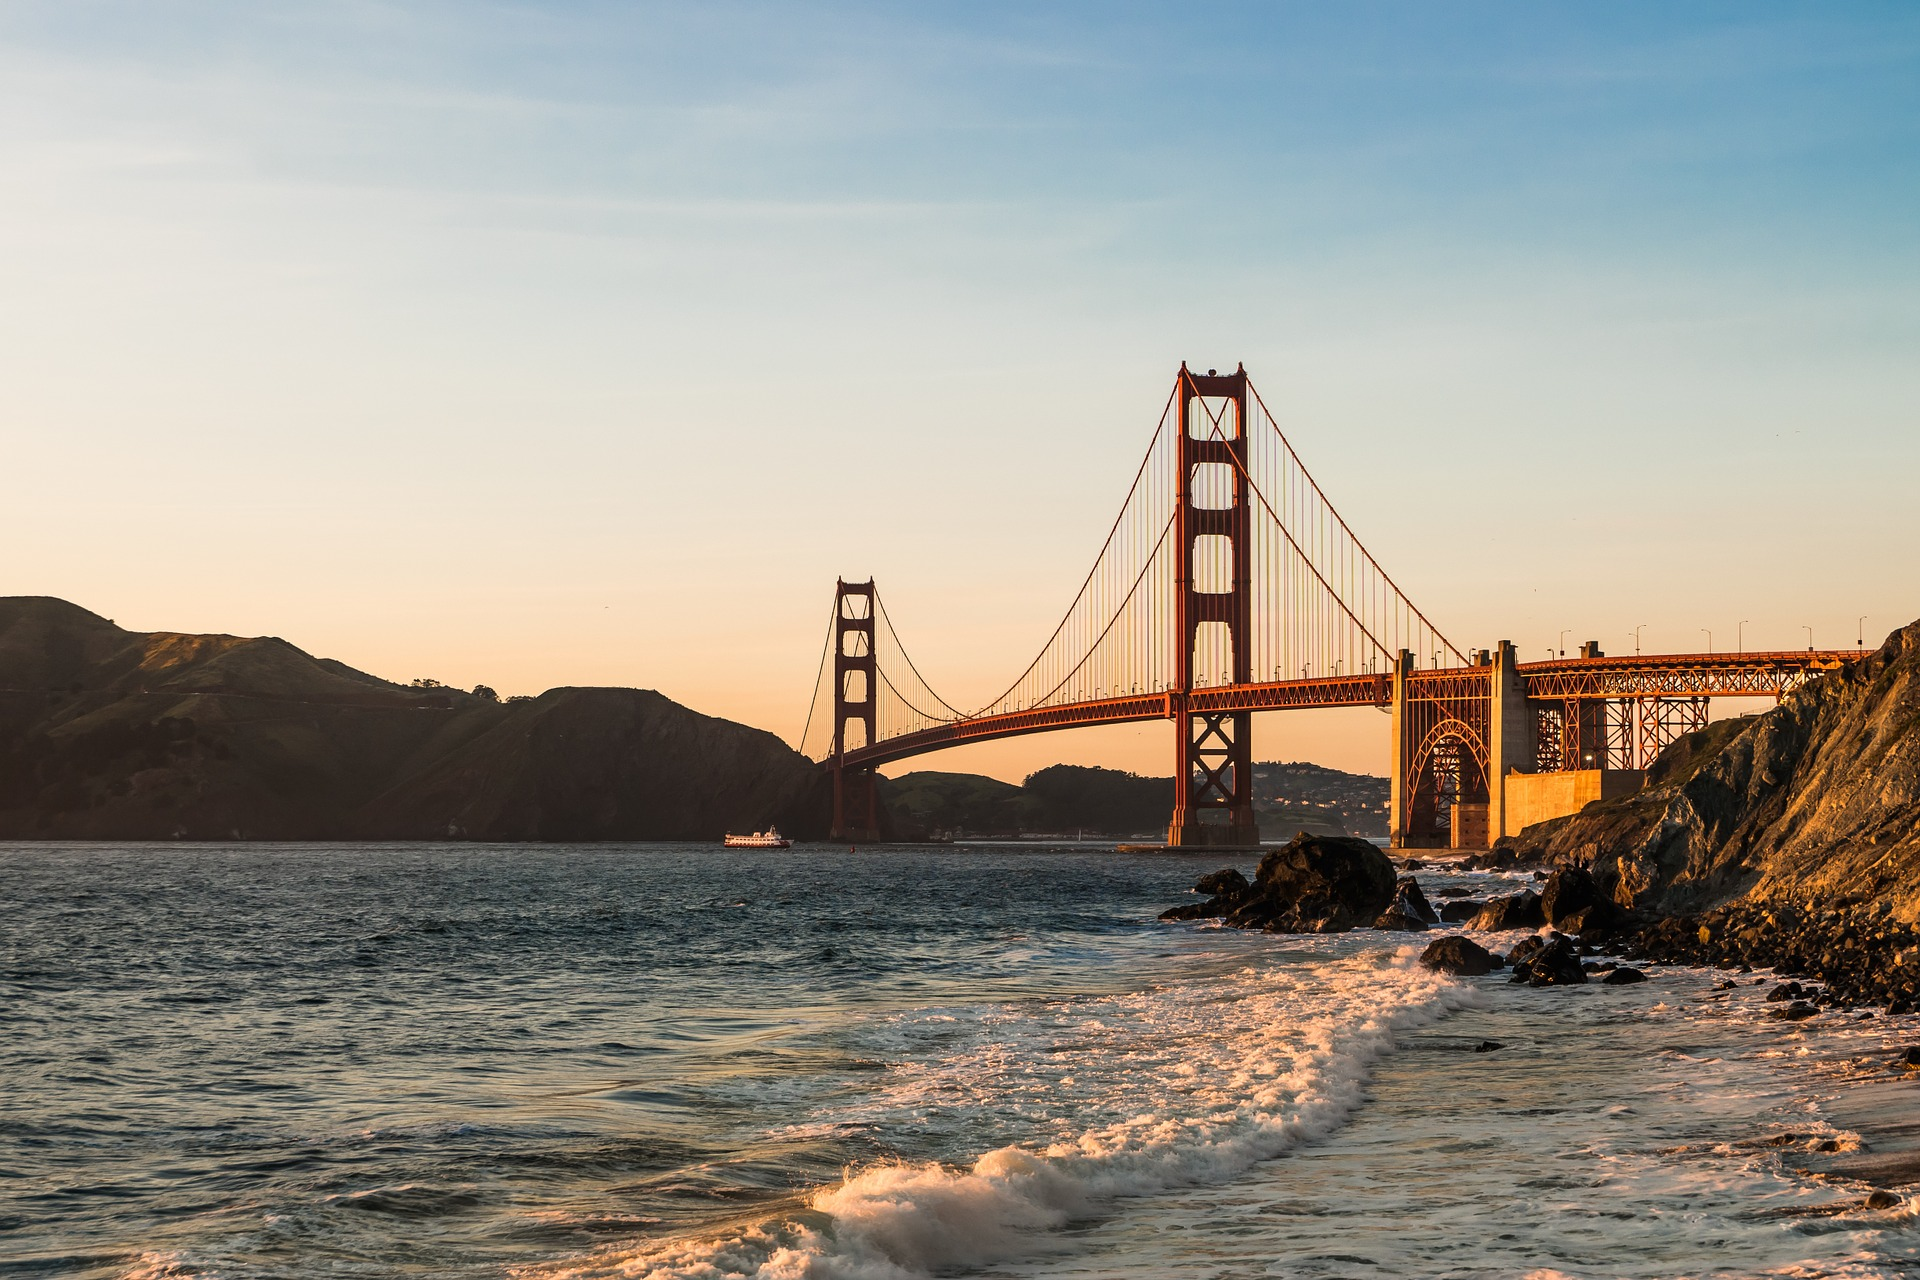 Great Places to Visit in the United States: The Golden Gate Bridge